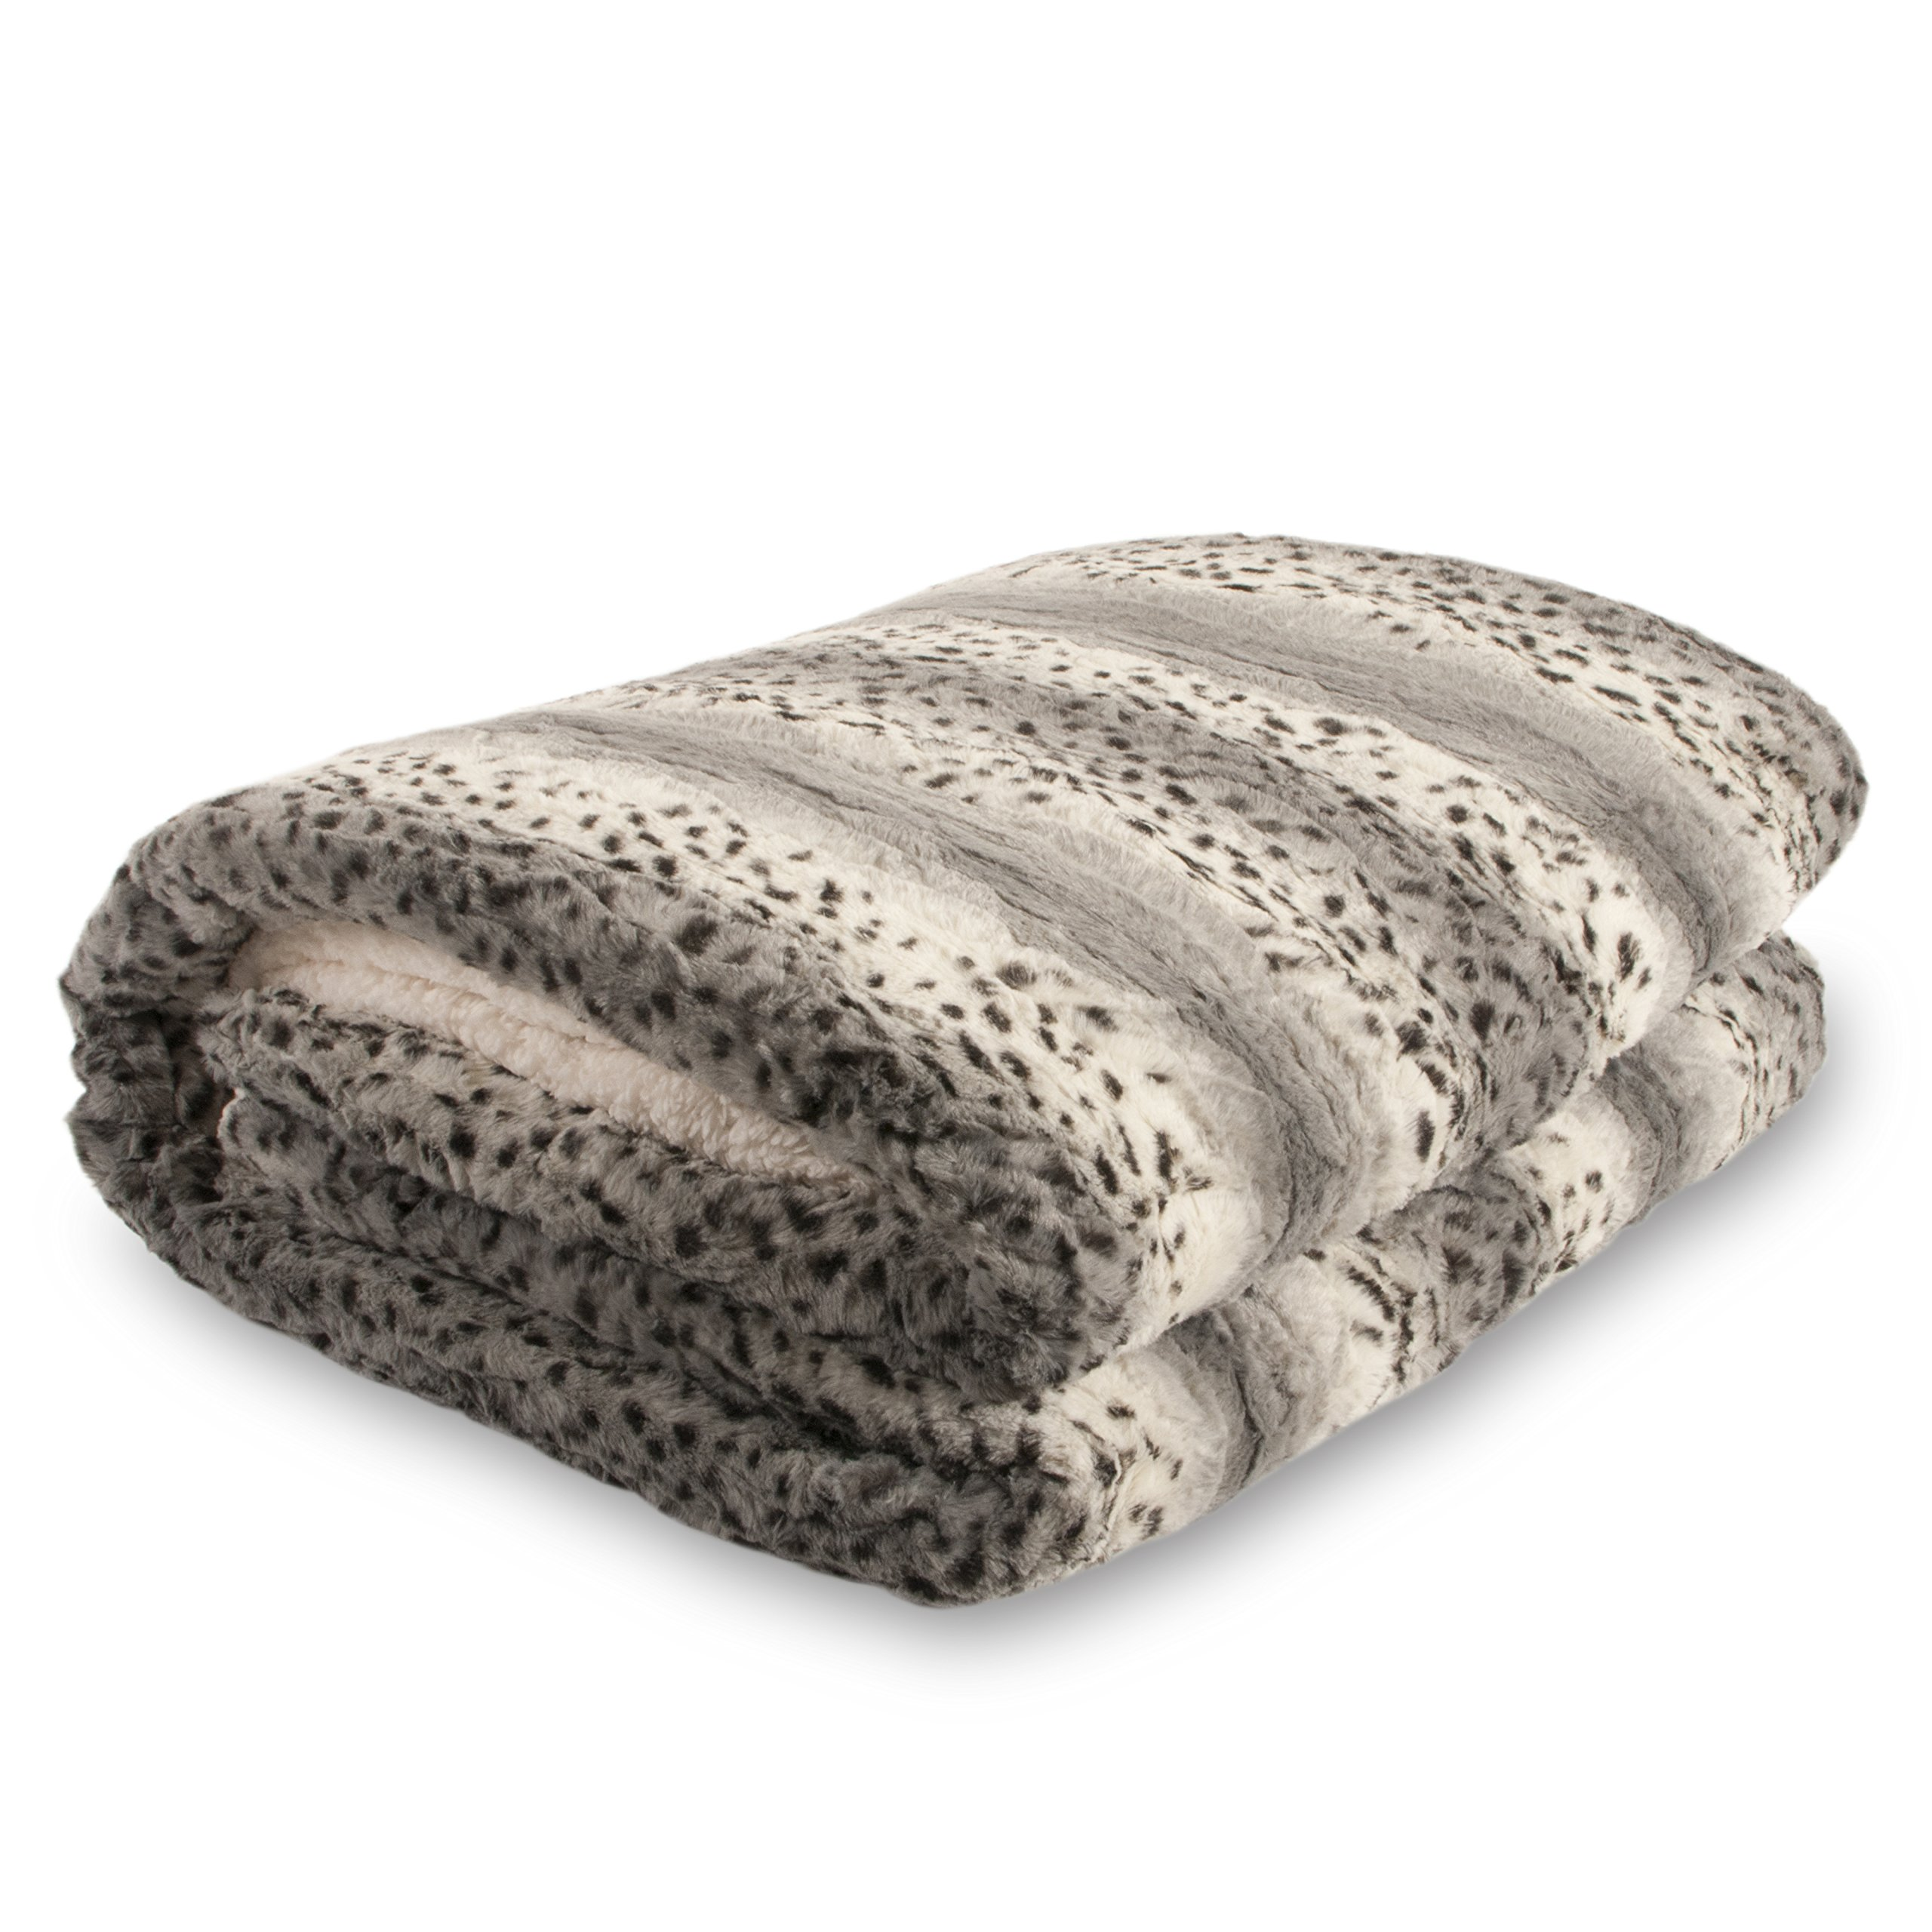 Bellahome Safari Faux Fur Plush Throw Blanket Comforter AK607, Snow Leopard, King